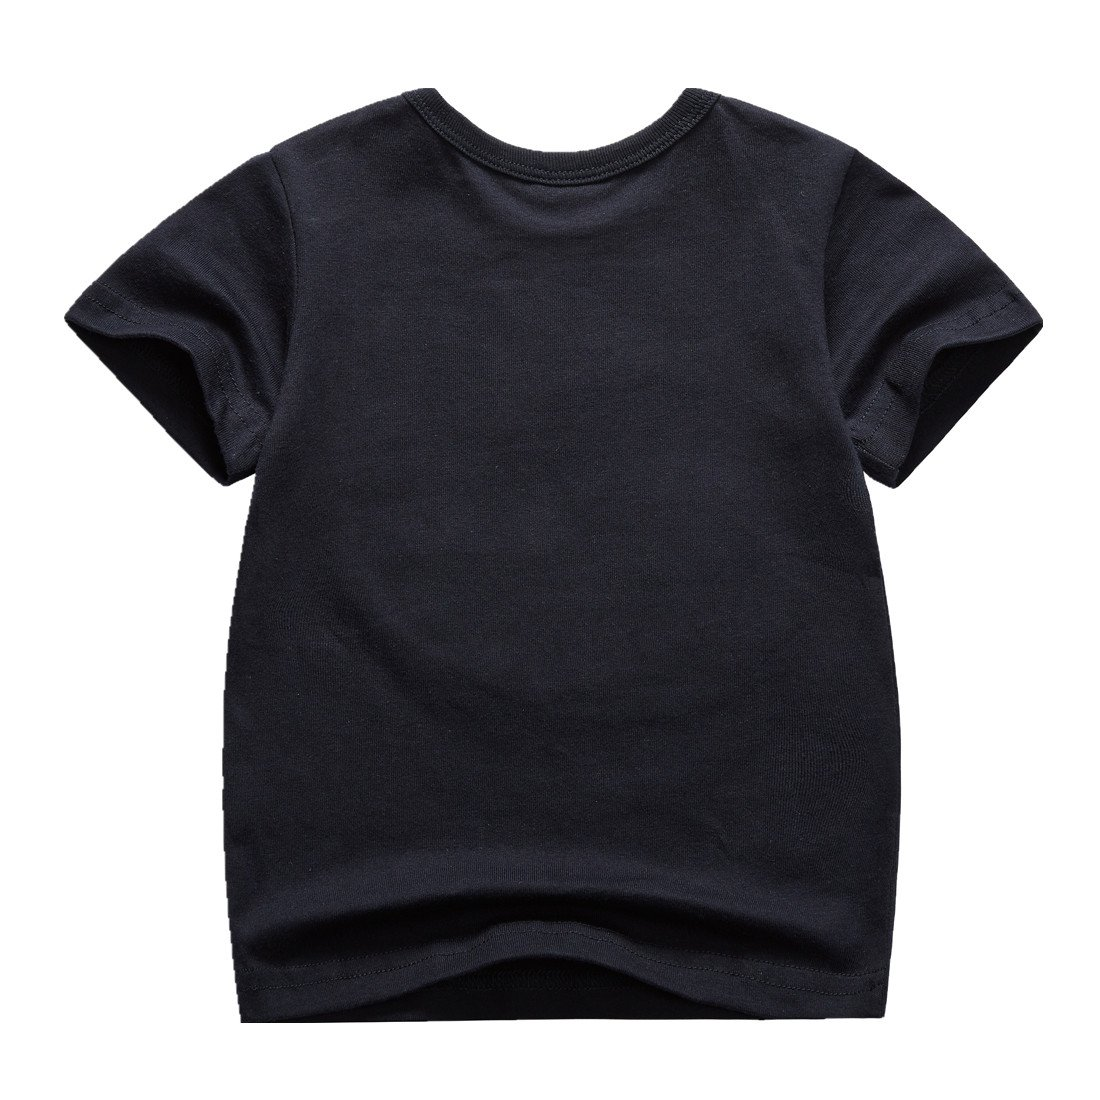 Sooxiwood Little Boys T-Shirt Animal Summer Size 2T Navy-Black by Sooxiwood (Image #2)